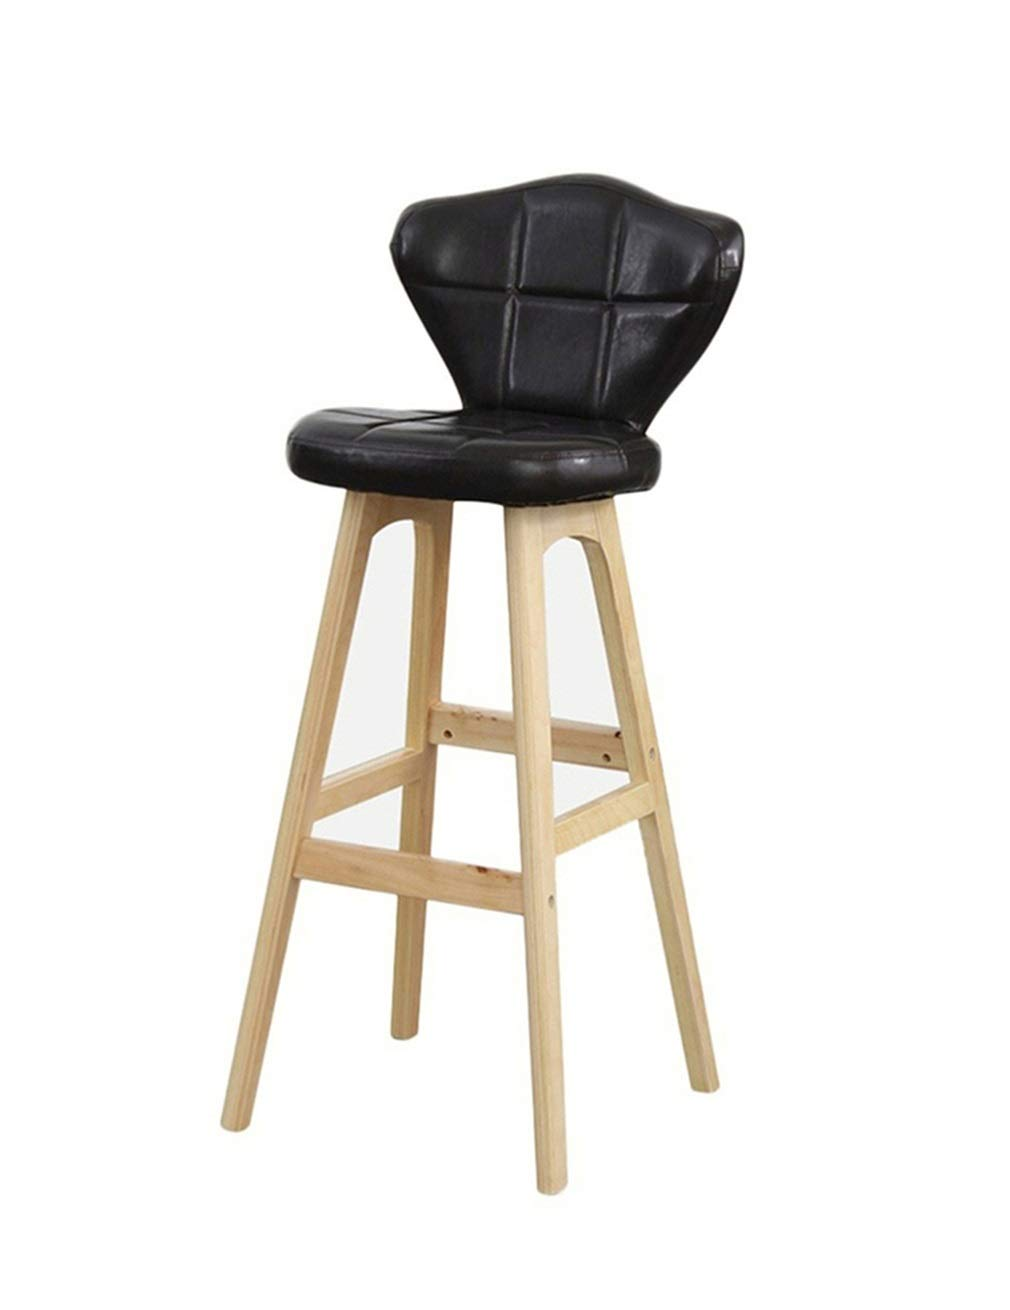 Wpjpzwj777 BARSTOOLS Bar Chair with Backrest, Sturdy and Durable, Suitable for Cafes, Beauty Salons, Outdoor and Other Occasions, Multi-Color Optional (Color : 2) by Wpjpzwj777